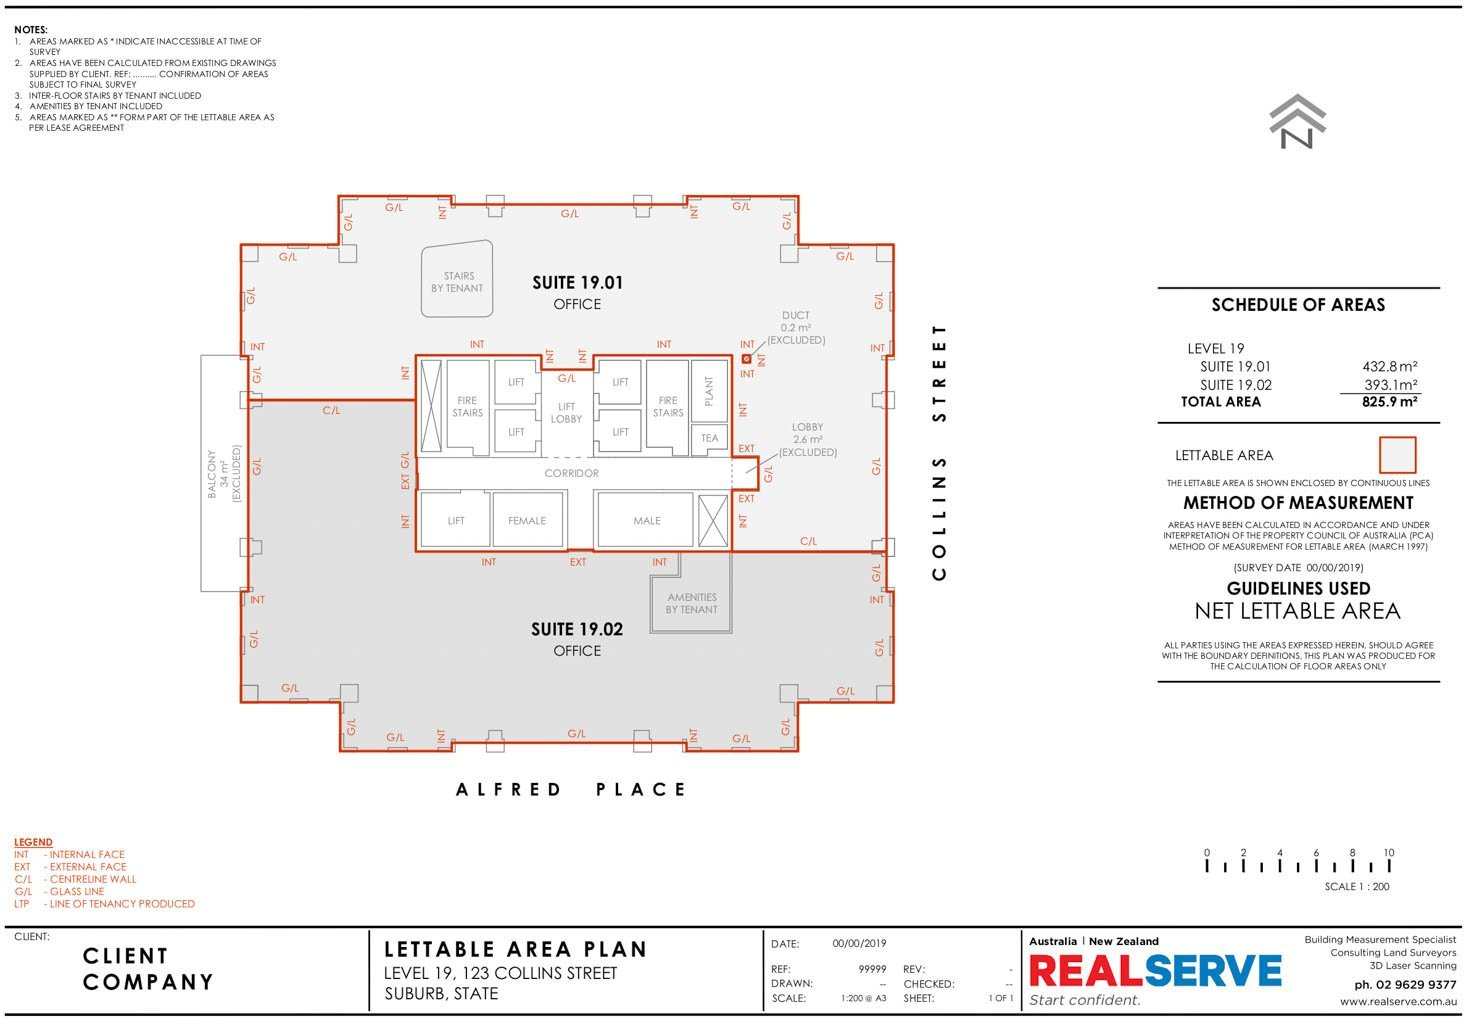 REALSERVE NET LETTABLE AREA SAMPLE DRAWING FOR A BUILDING SPACE